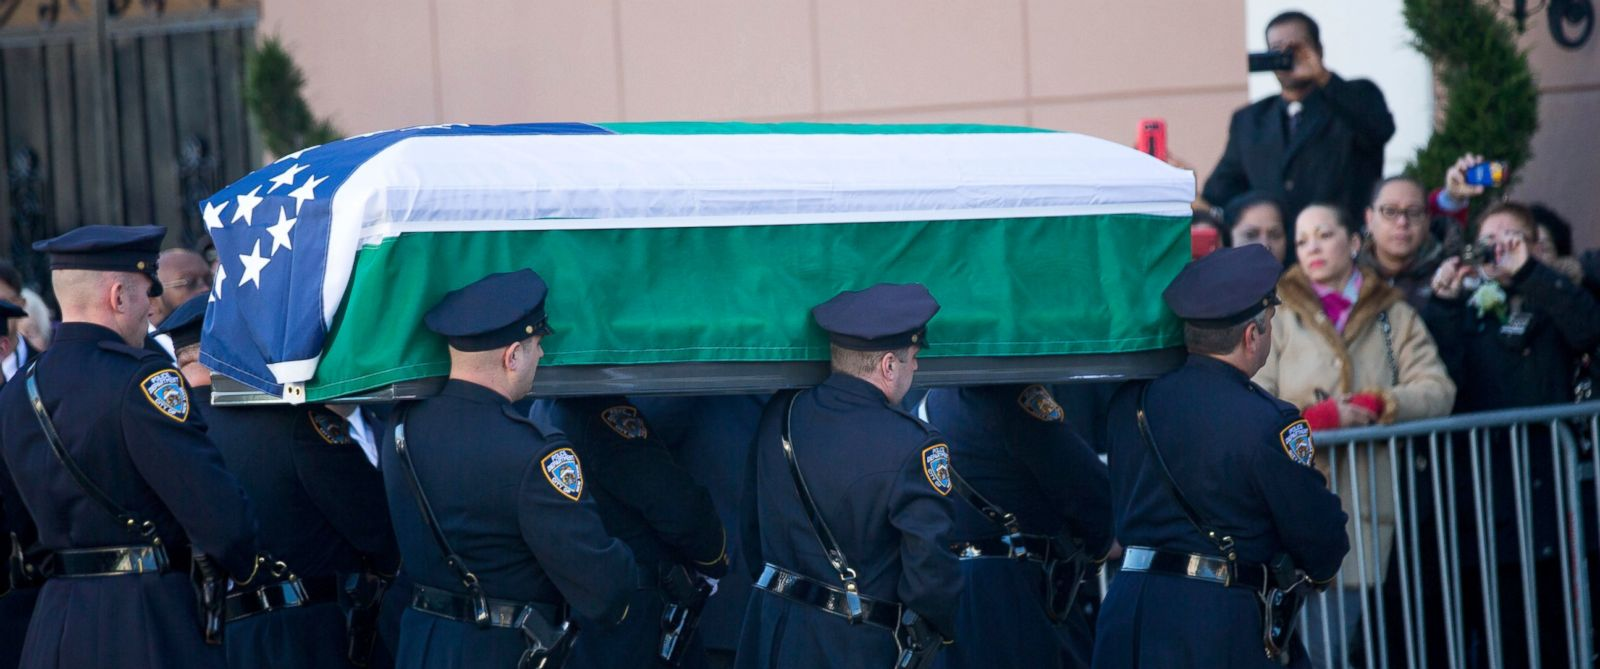 PHOTO: The casket of New York City police officer Rafael Ramos is carried into Christ Tabernacle Church prior to his wake, Dec. 26, 2014, in the Glendale, New York City.